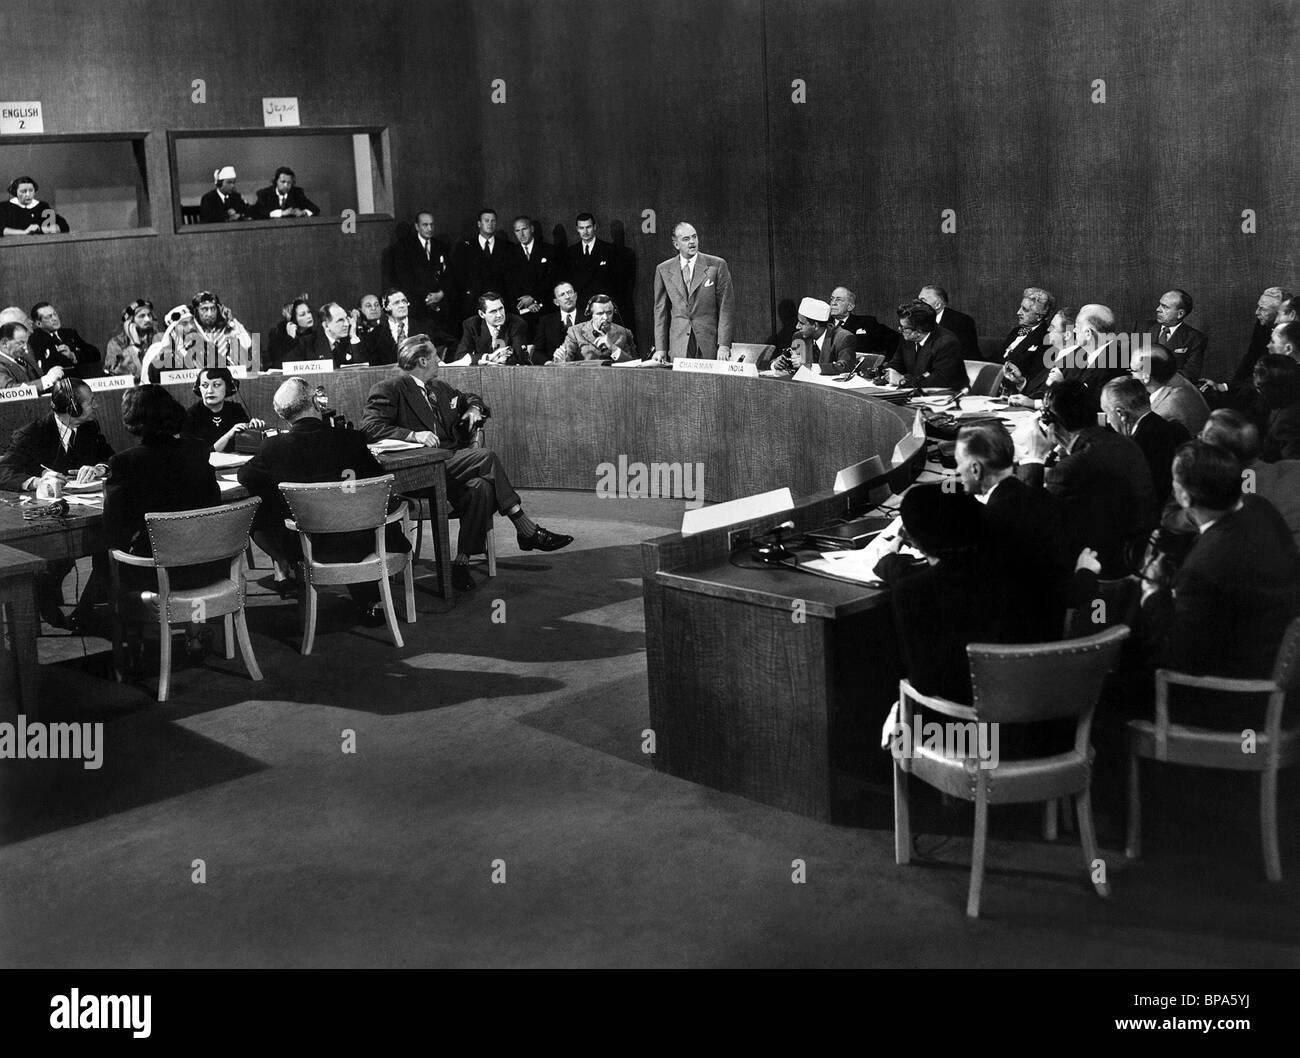 WORLD LEADERS CONFERENCE SCENE WHEN WORLDS COLLIDE (1951) - Stock Image